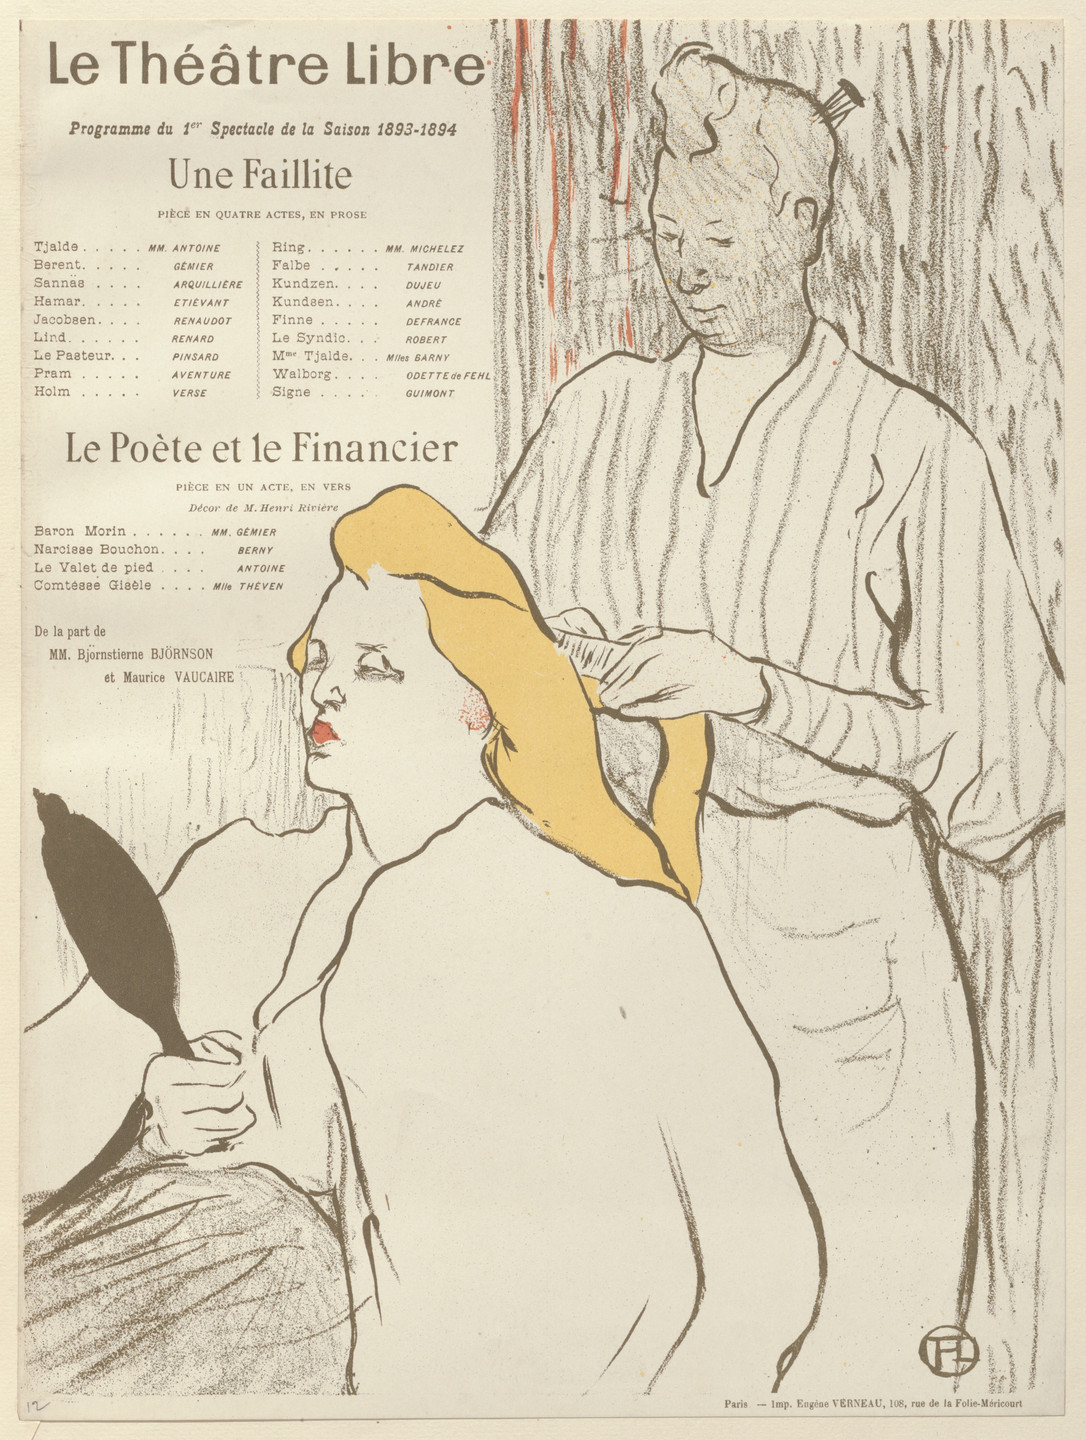 Henri de Toulouse-Lautrec. The Hairdresser (La coiffure), program for Bankruptcy (Une Faillite) and The poet and the financier (Le Poète et le financier) from The Beraldi Album of Theatre Programs. 1893